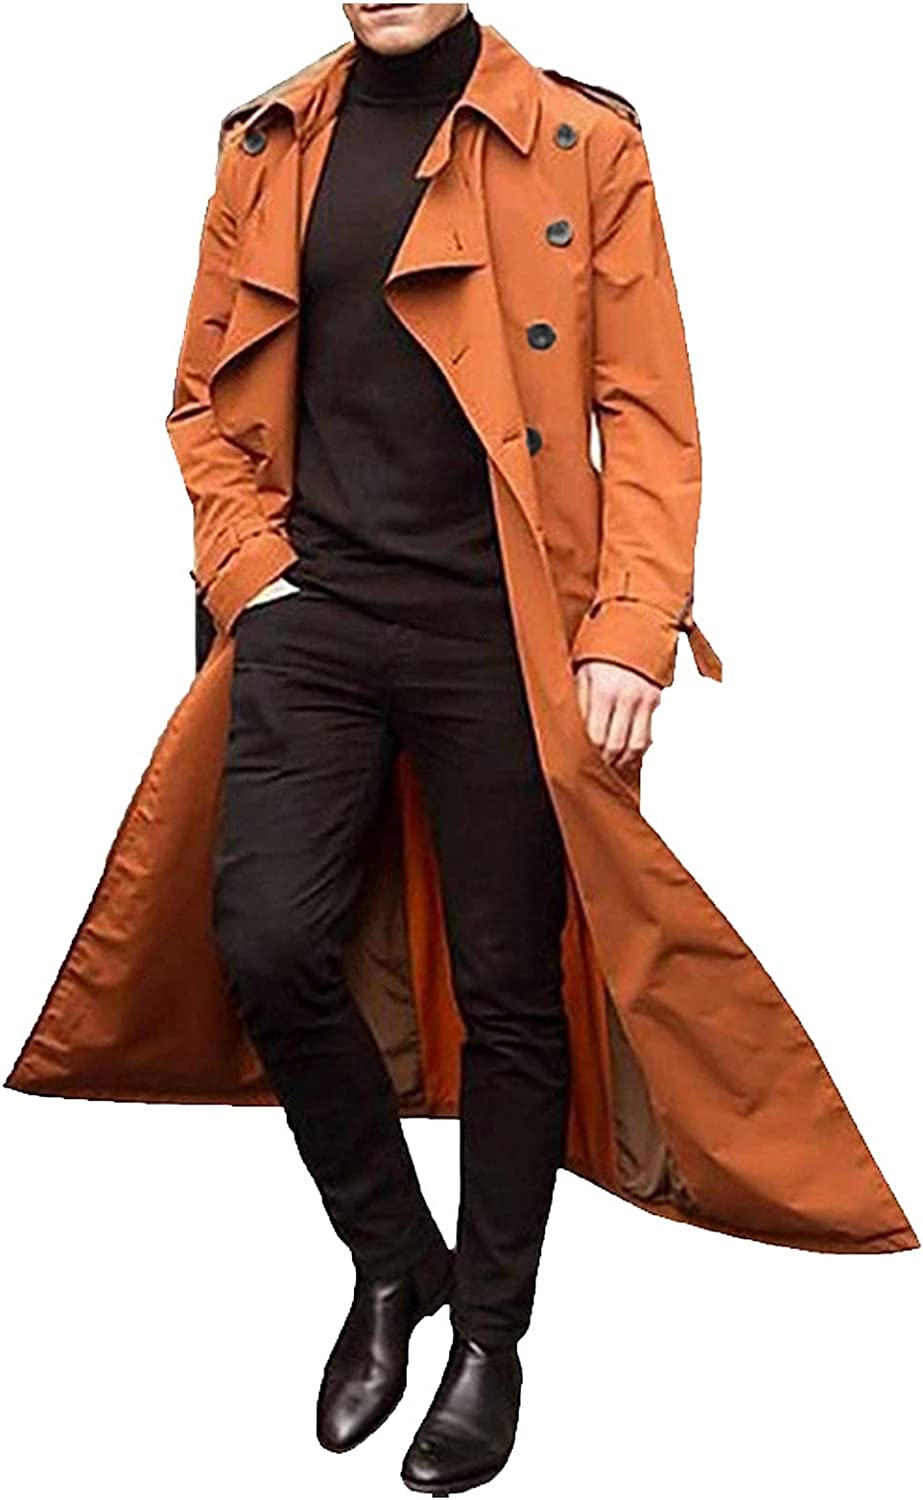 GDJGTA Autumn and Winter Long Trench Coat for Men Double Breasted Coats Belt Loose Jacket Mid-Length Lightweight Peacoat